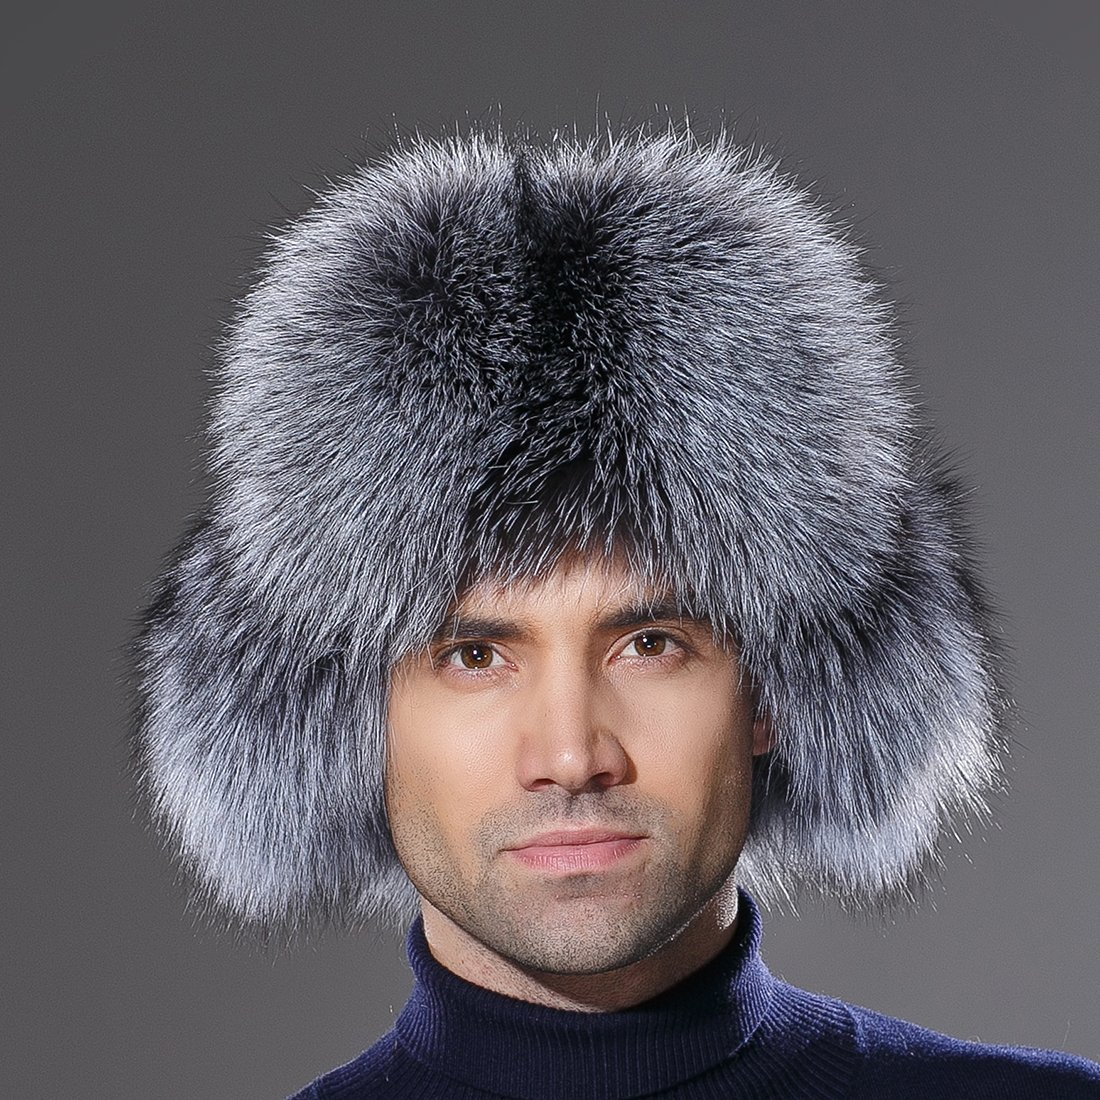 URSFUR Winter Russian Fur Hat Mens Real Silver Fox Fur Ushanka Trapper Cap by URSFUR (Image #3)